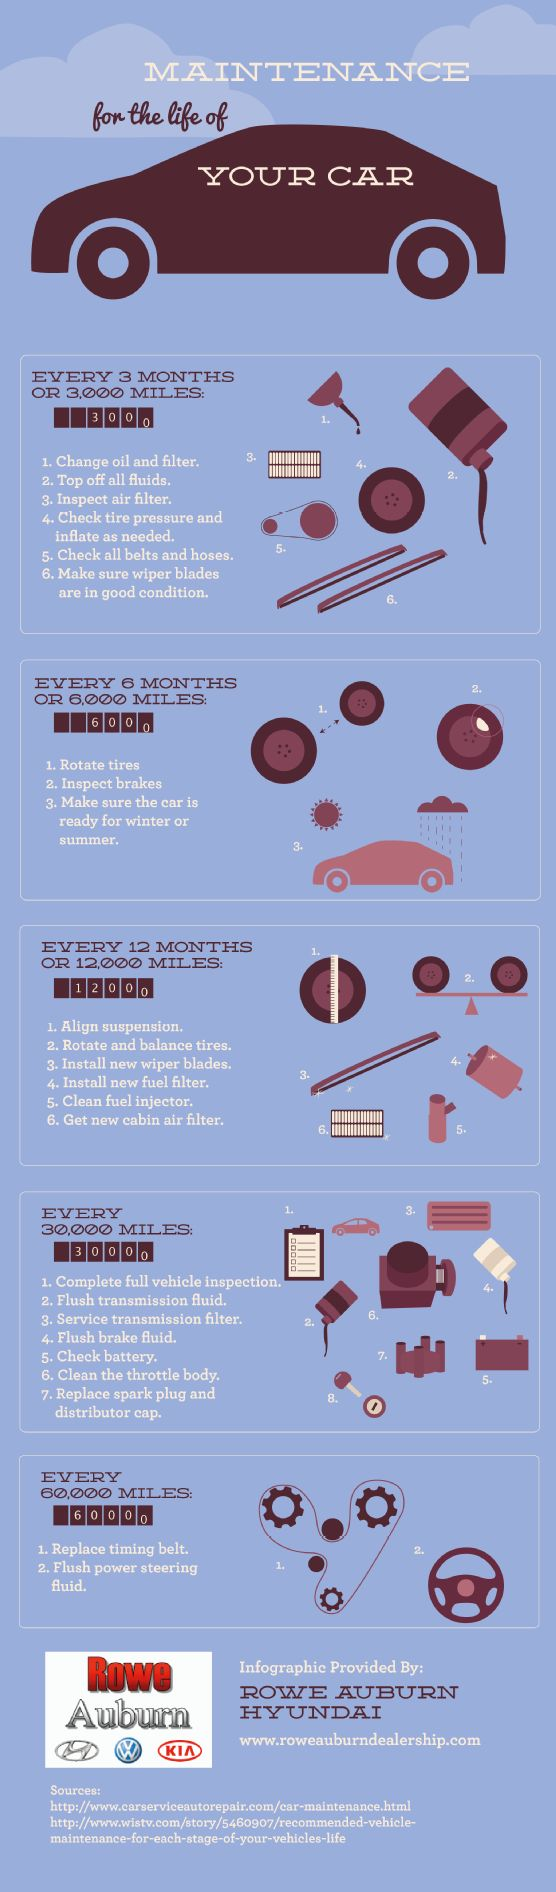 Did you know that your vehicle needs a complete inspection every 30,000 miles? If you want to get the most out of your car, you should keep up with regular maintenance checks. This infographic time table shows you how. Original source: http://www.roweauburndealership.com/665486/2013/03/18/maintenance-for-the-life-of-your-car-infographic.html